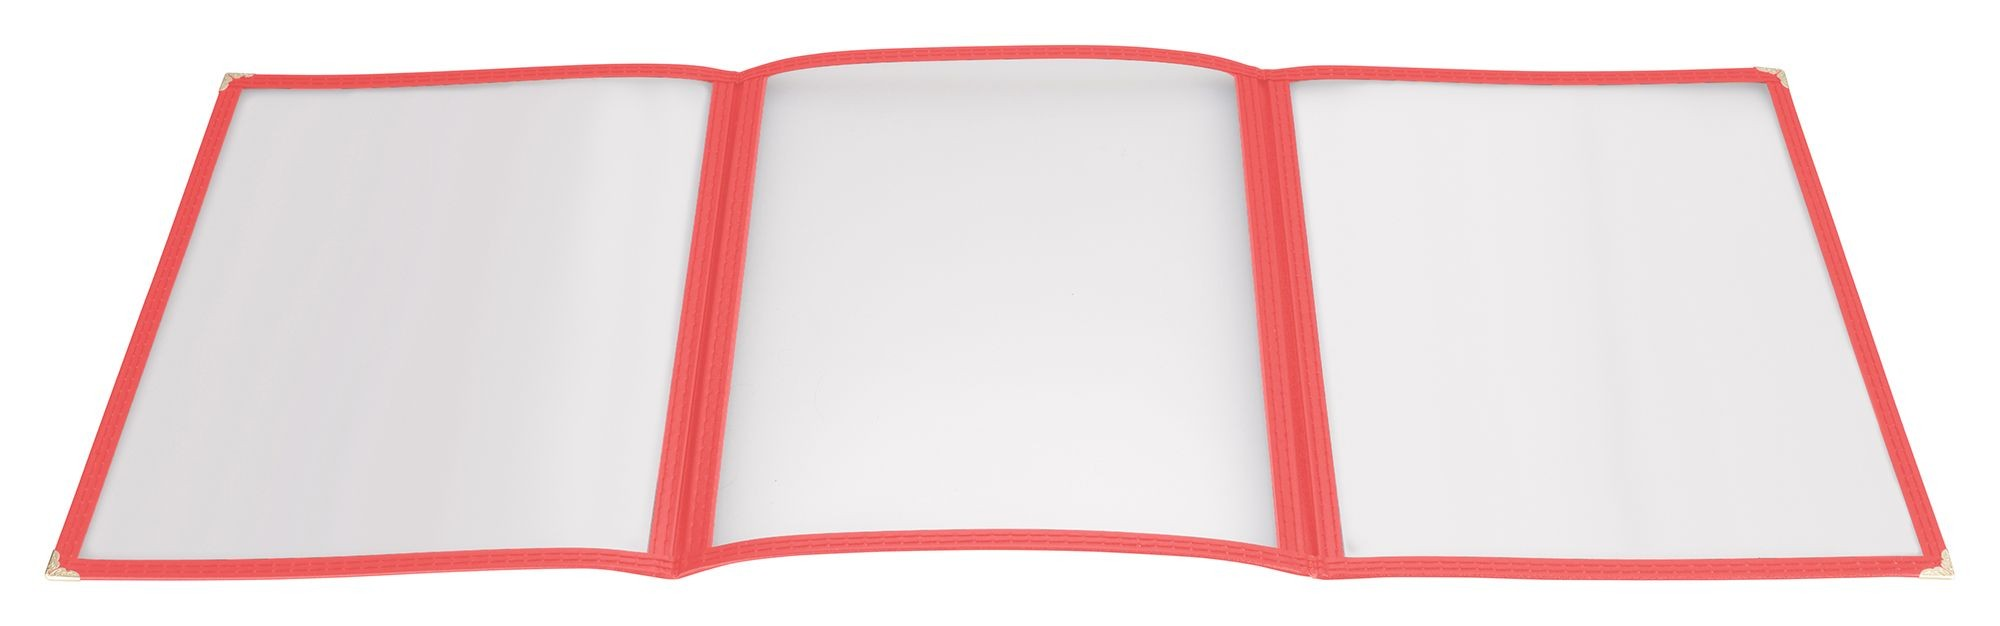 "Winco PMCT-9R Red Triple Fold Menu Cover 9-1/2"" x 12"""